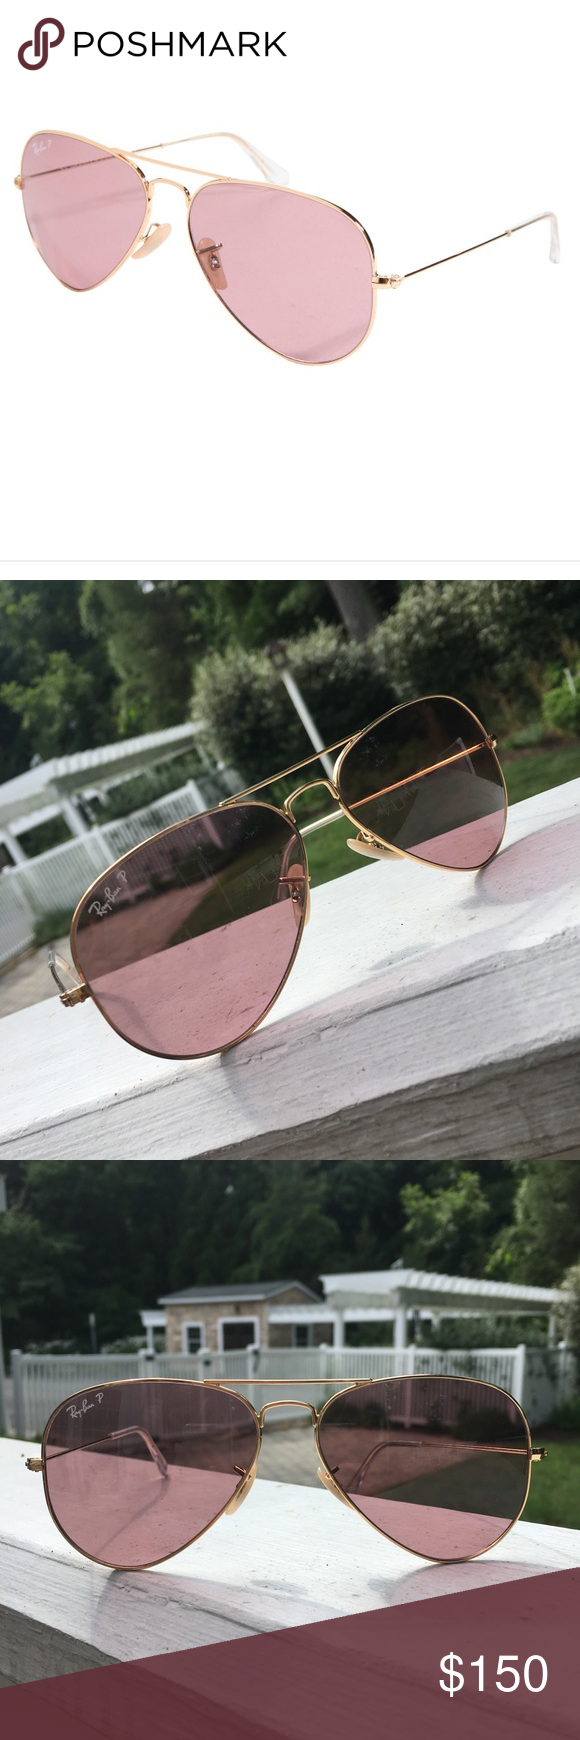 3de01478ca6bf Ray-Ban Aviator Polarized Pink and Gold Frame Ray-Ban RB3025 001 15